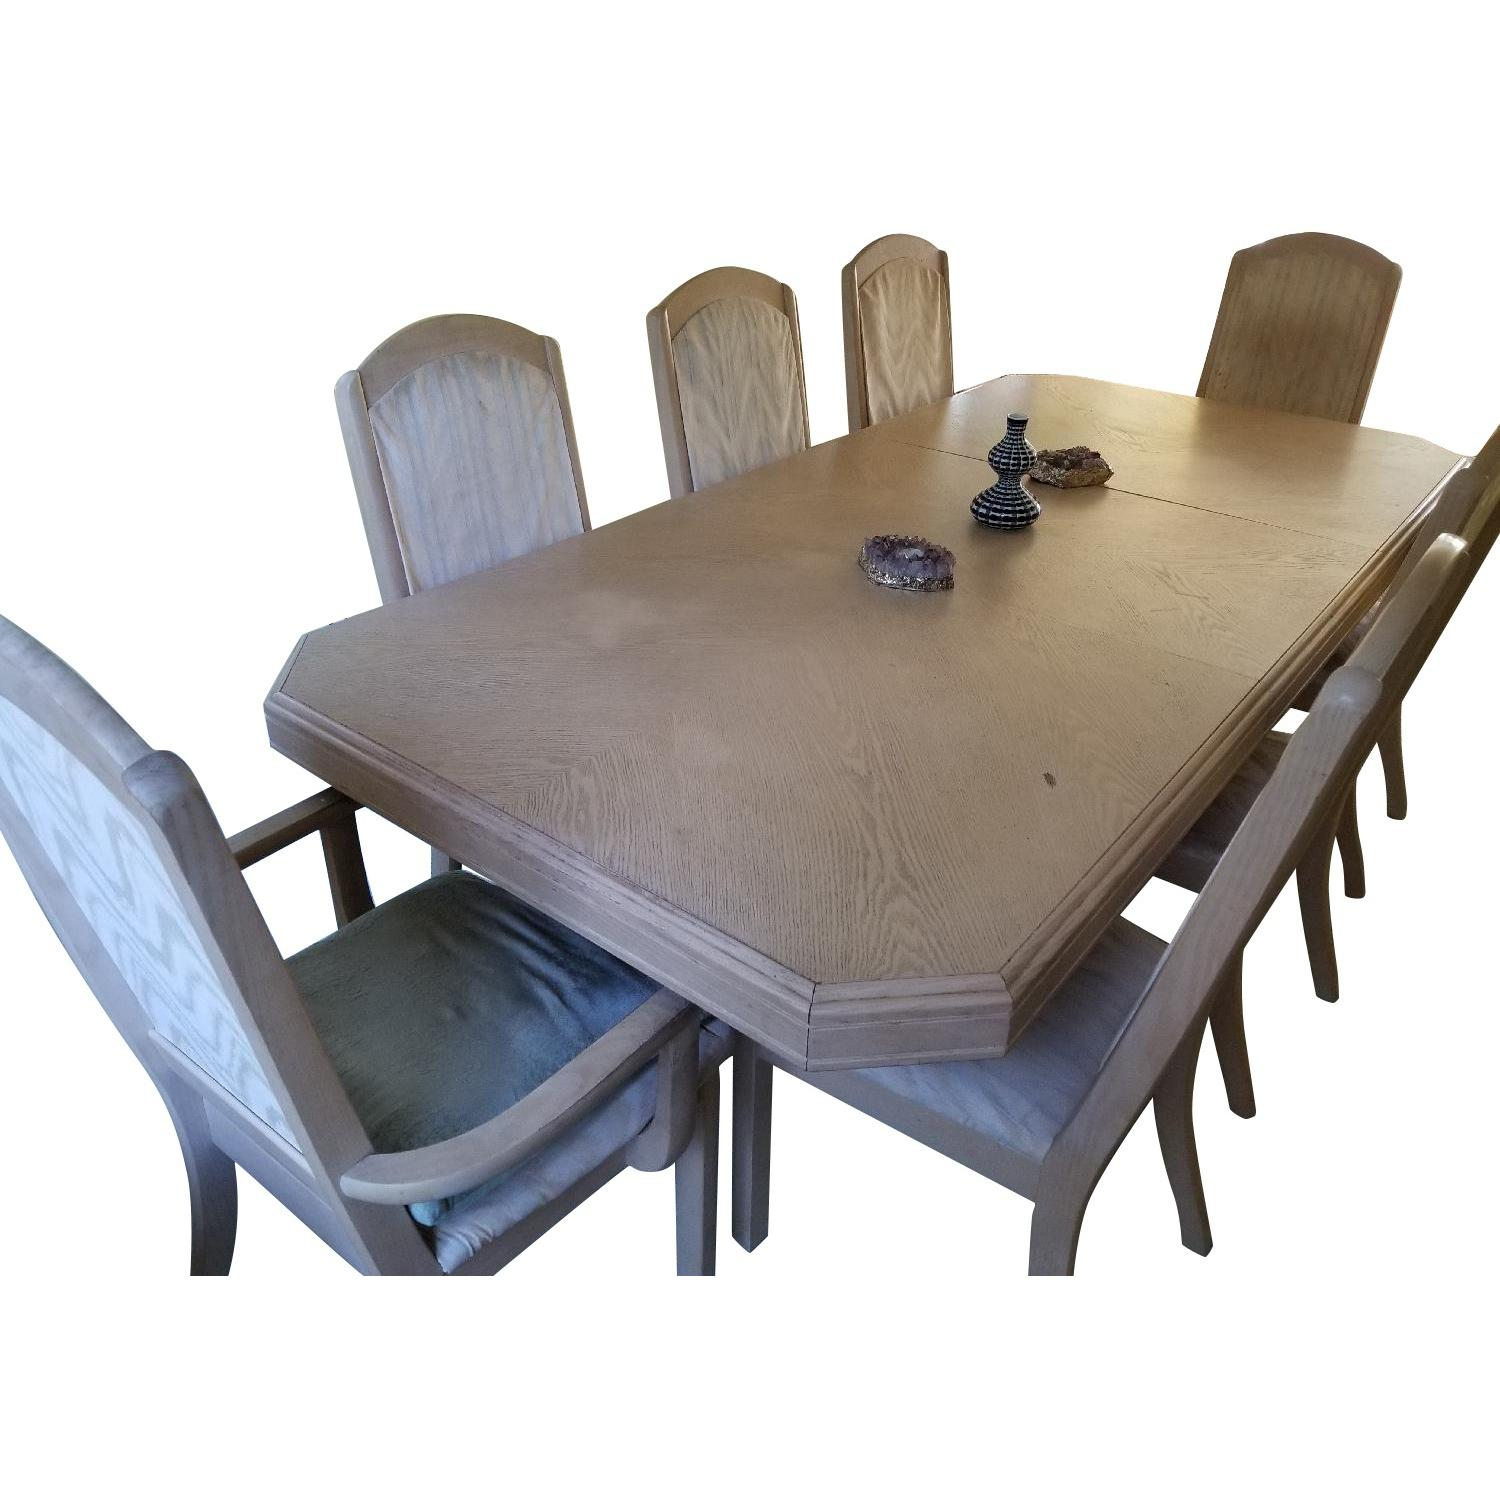 Seaman's Furniture Whitewash 9-Piece Dining Set - image-0